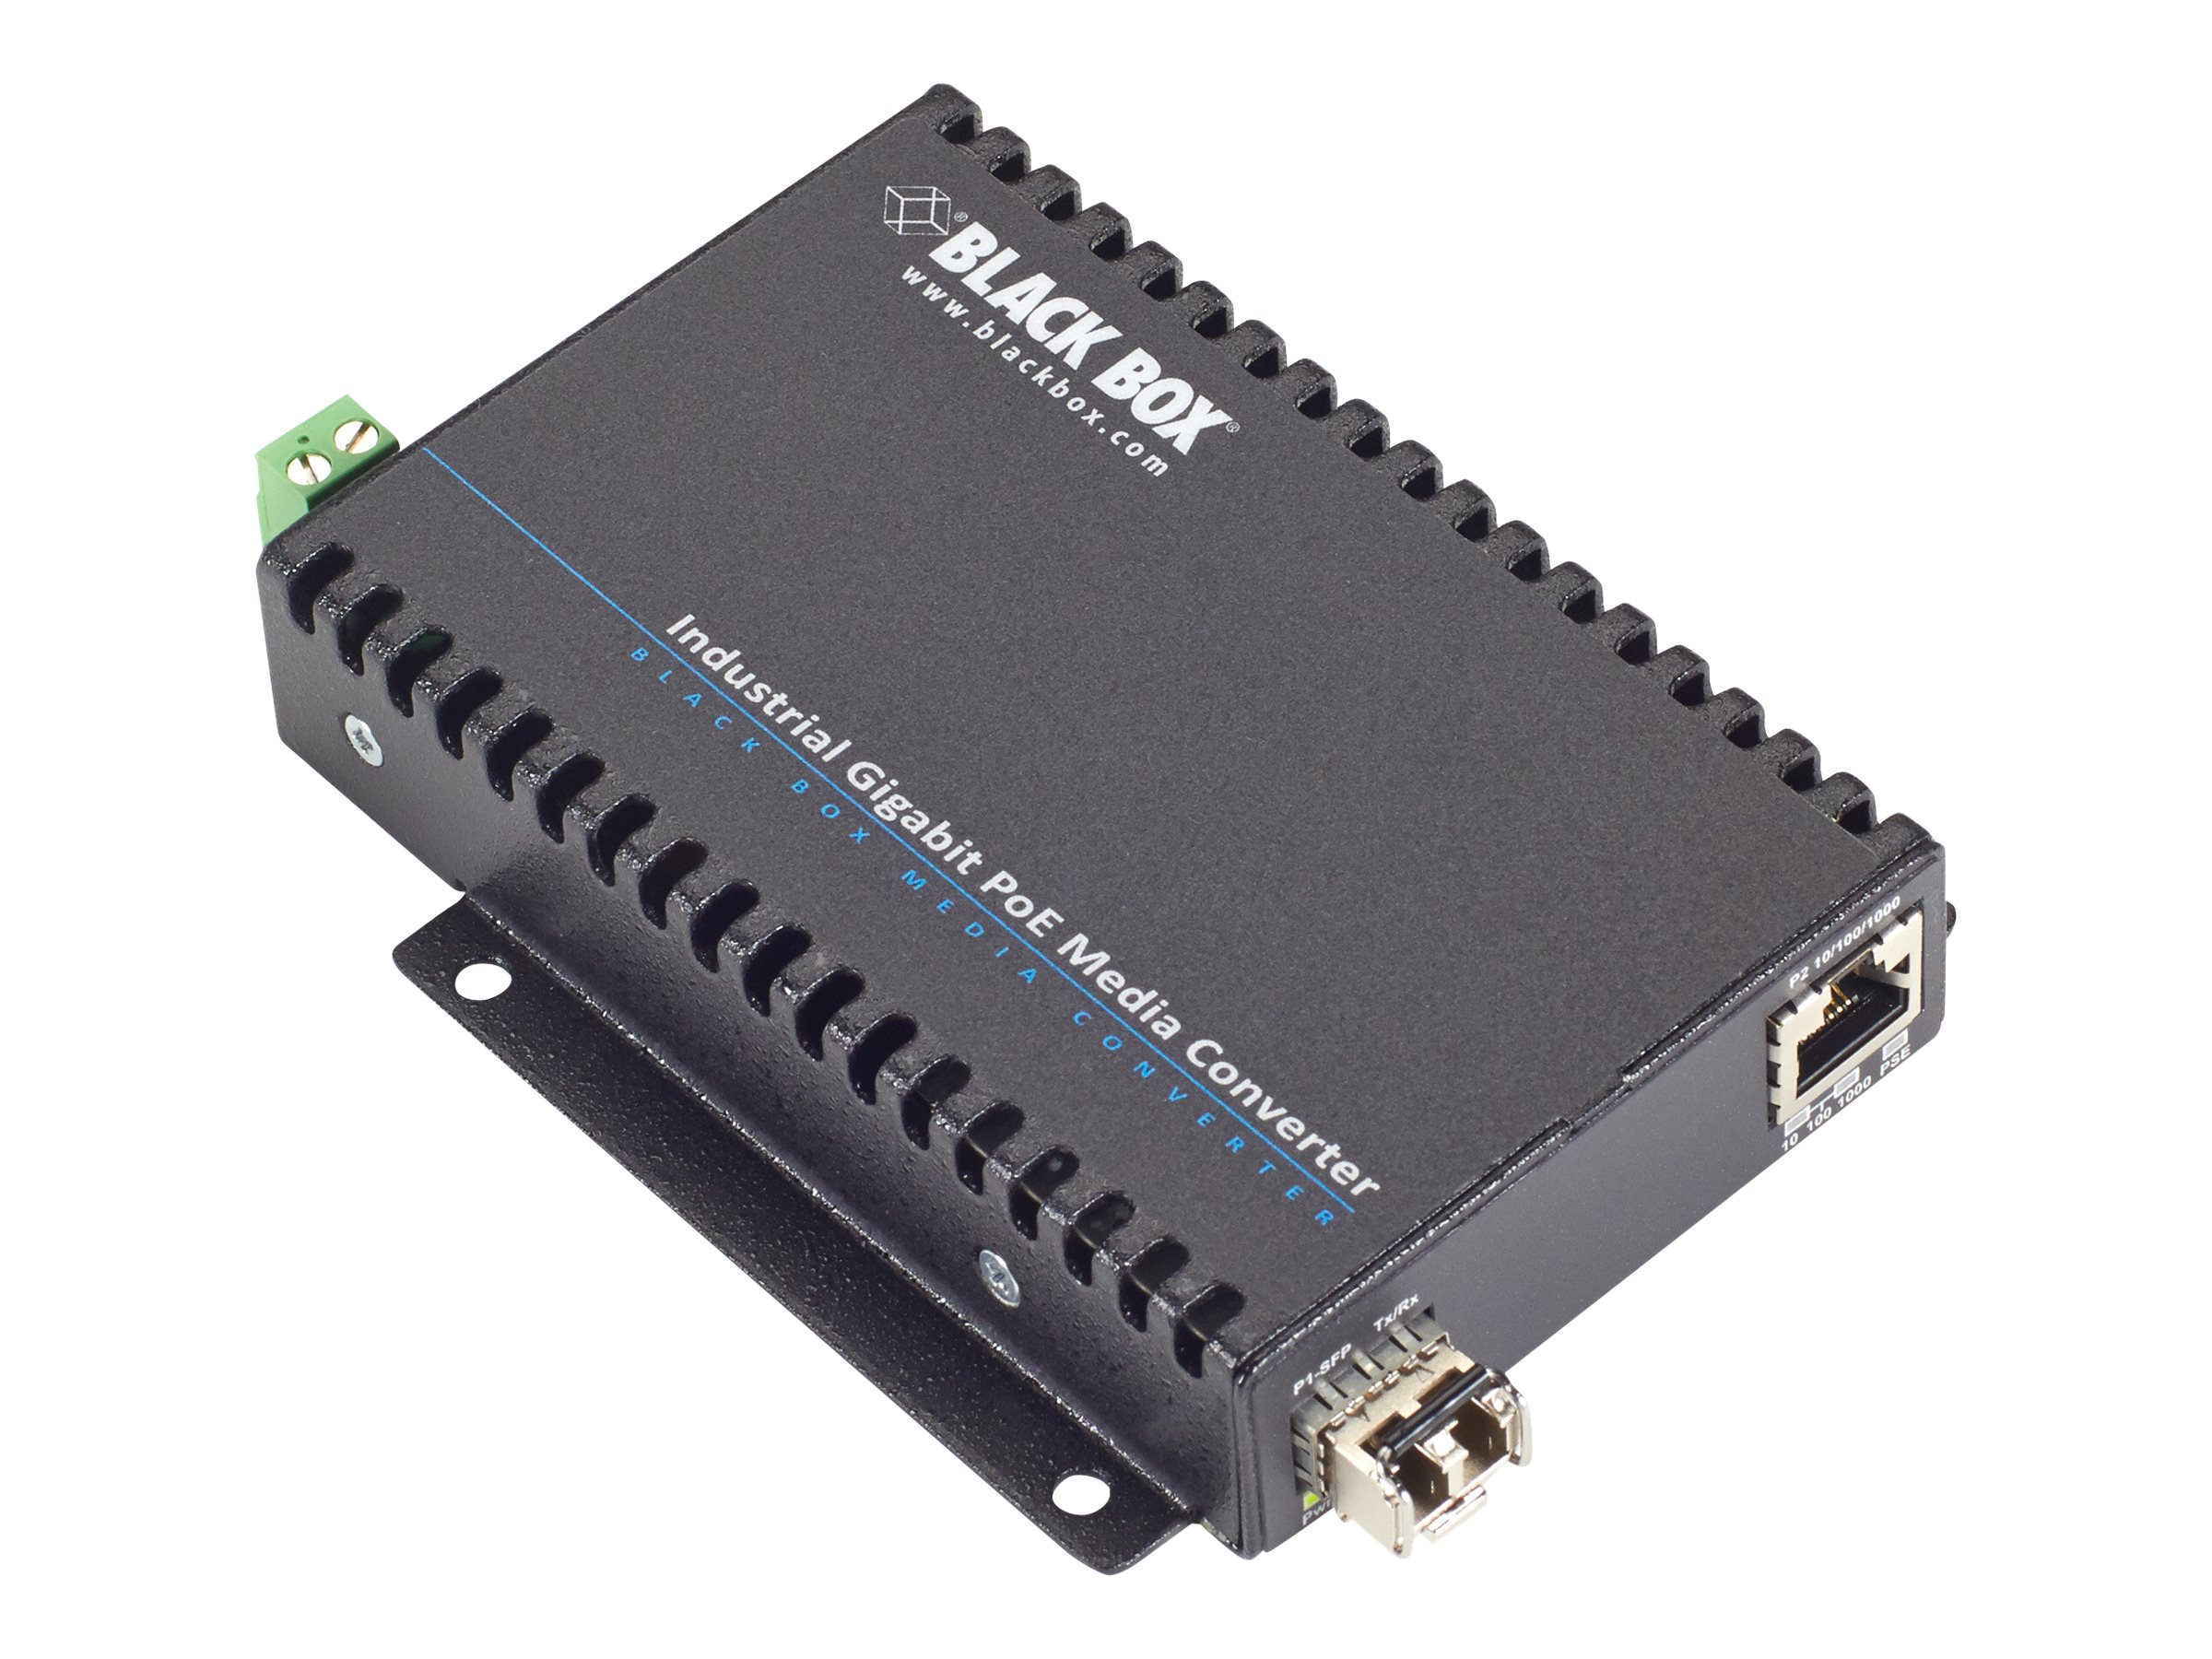 Black Box Industrial PoE Gigabit Ethernet Media Converter - fiber media converter - GigE - TAA Compliant